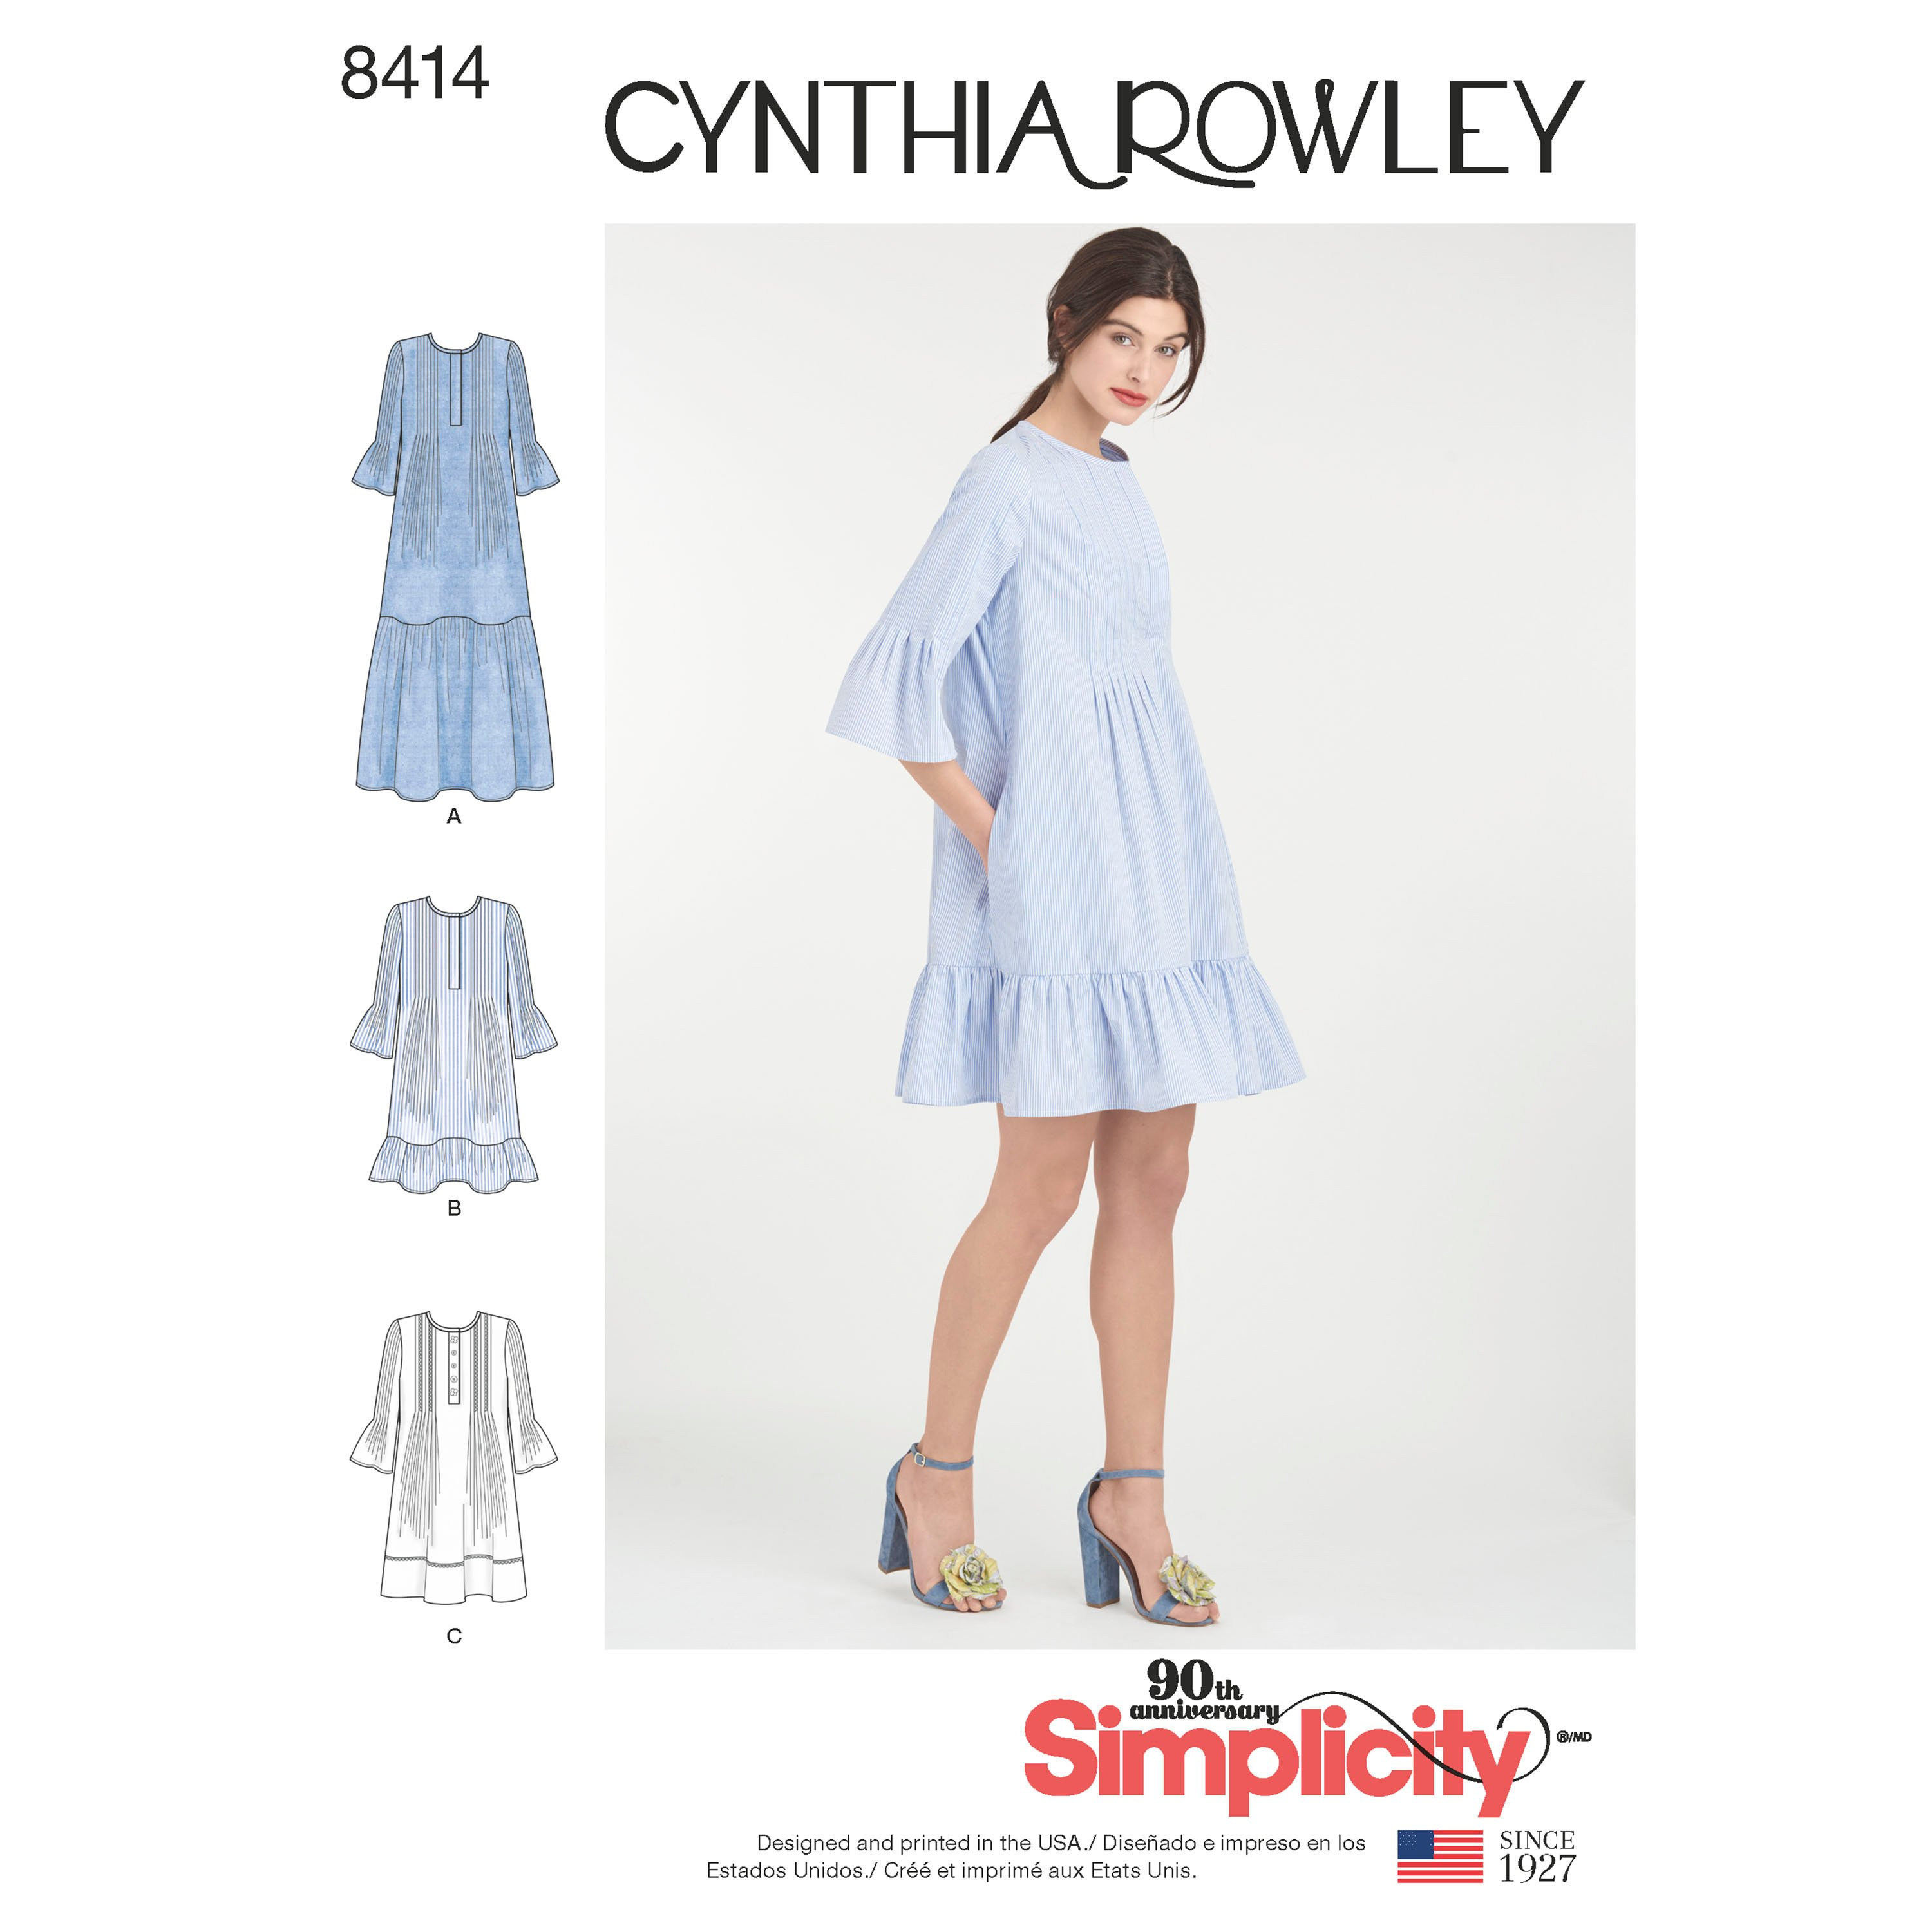 Simplicity 8414 Misses' Dress By Cynthia Rowley